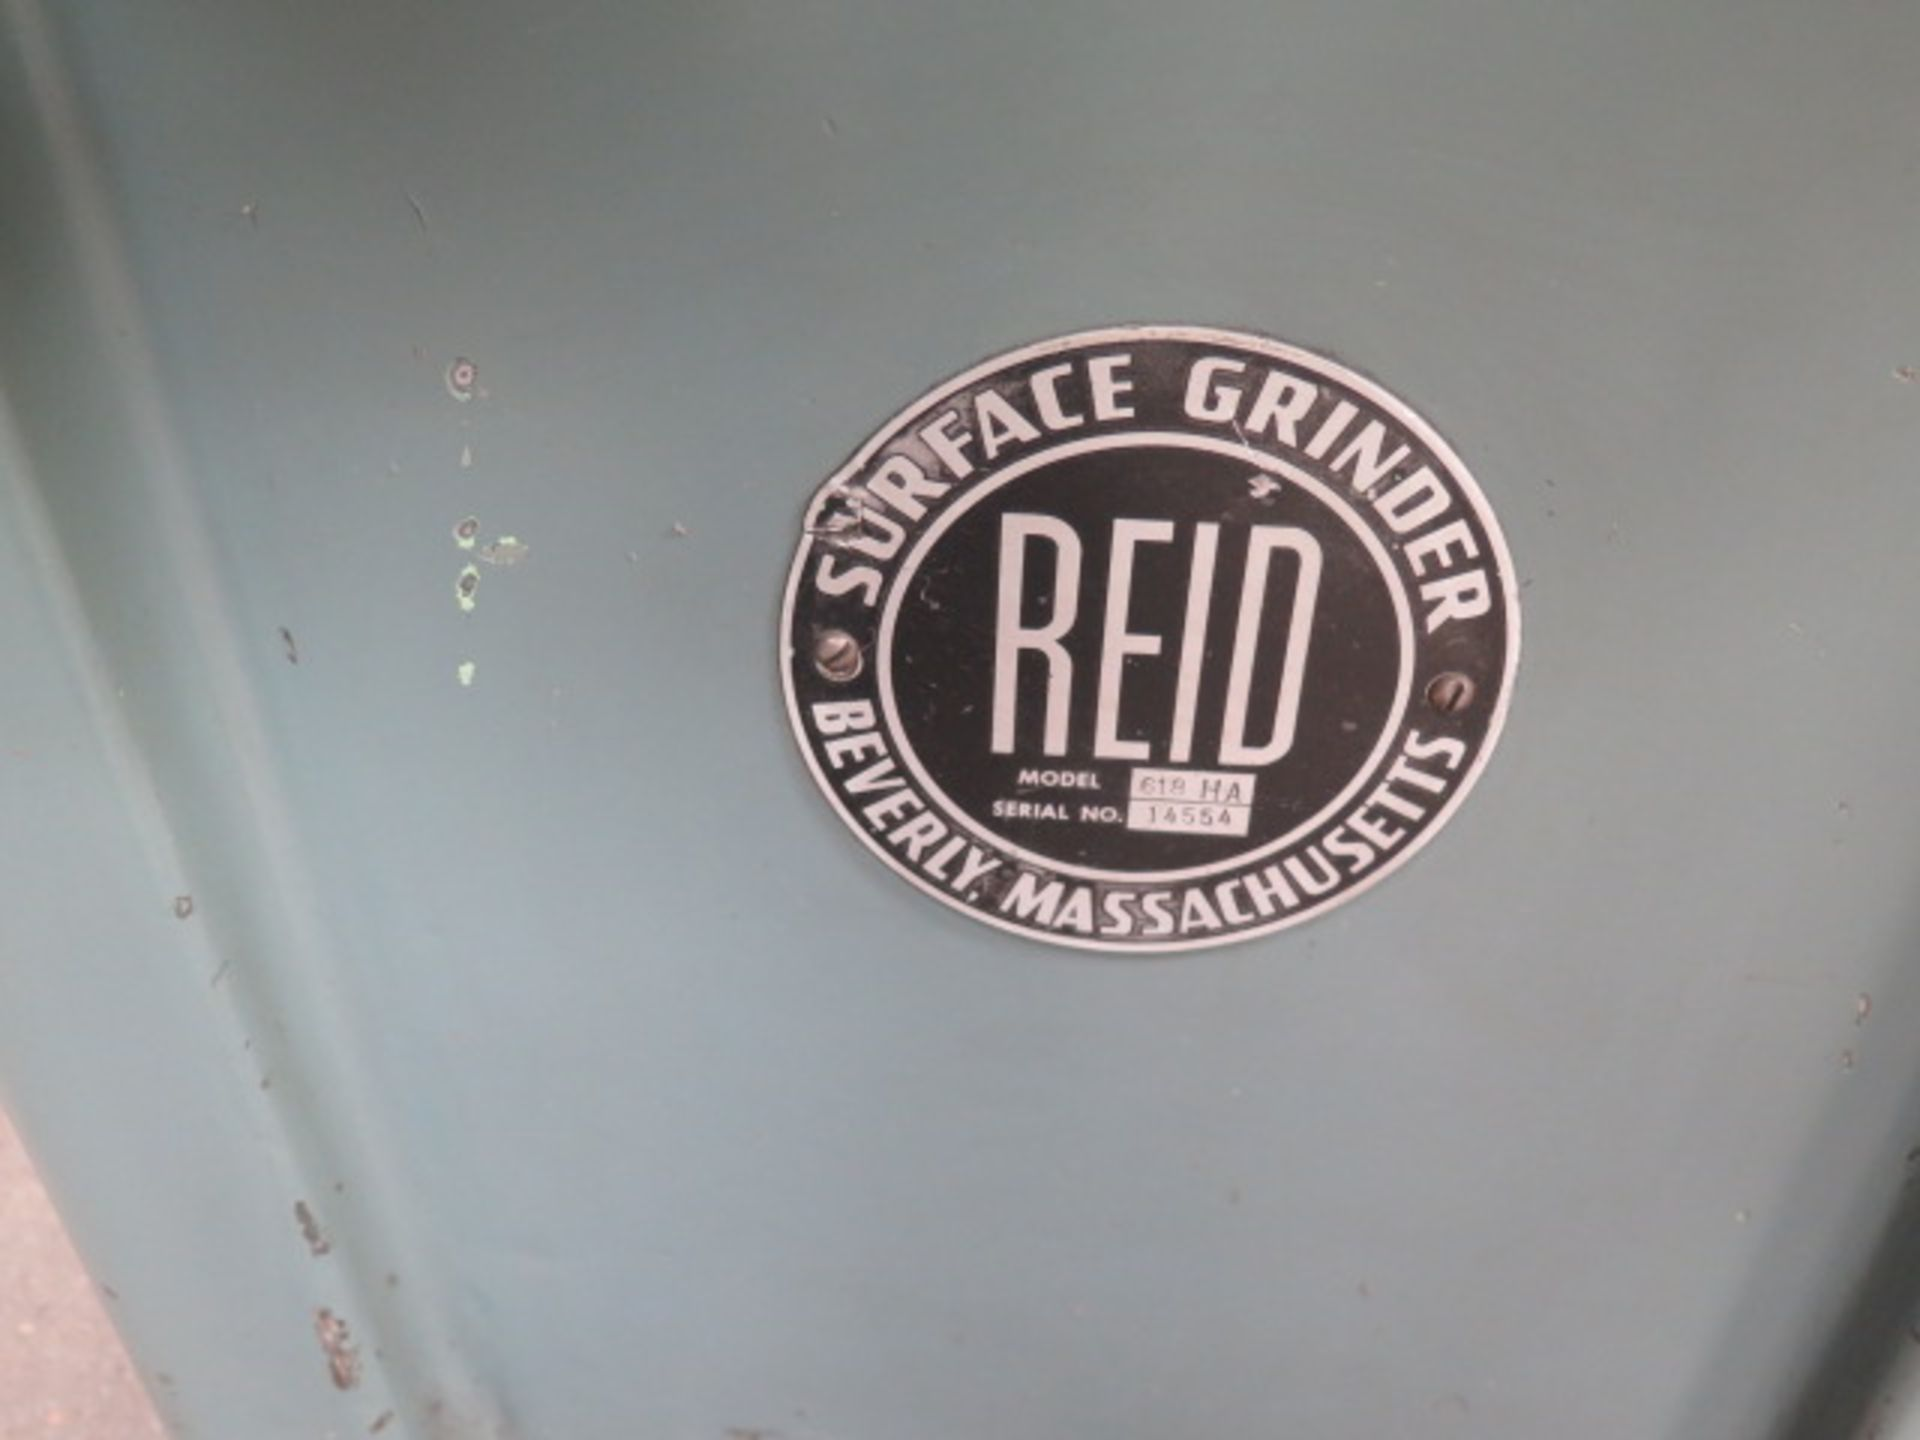 """Reid 618HA 6"""" x 18"""" Surface Grinder s/n 14554 w/ Magnetic Chuck (SOLD AS-IS - NO WARRANTY) - Image 4 of 9"""